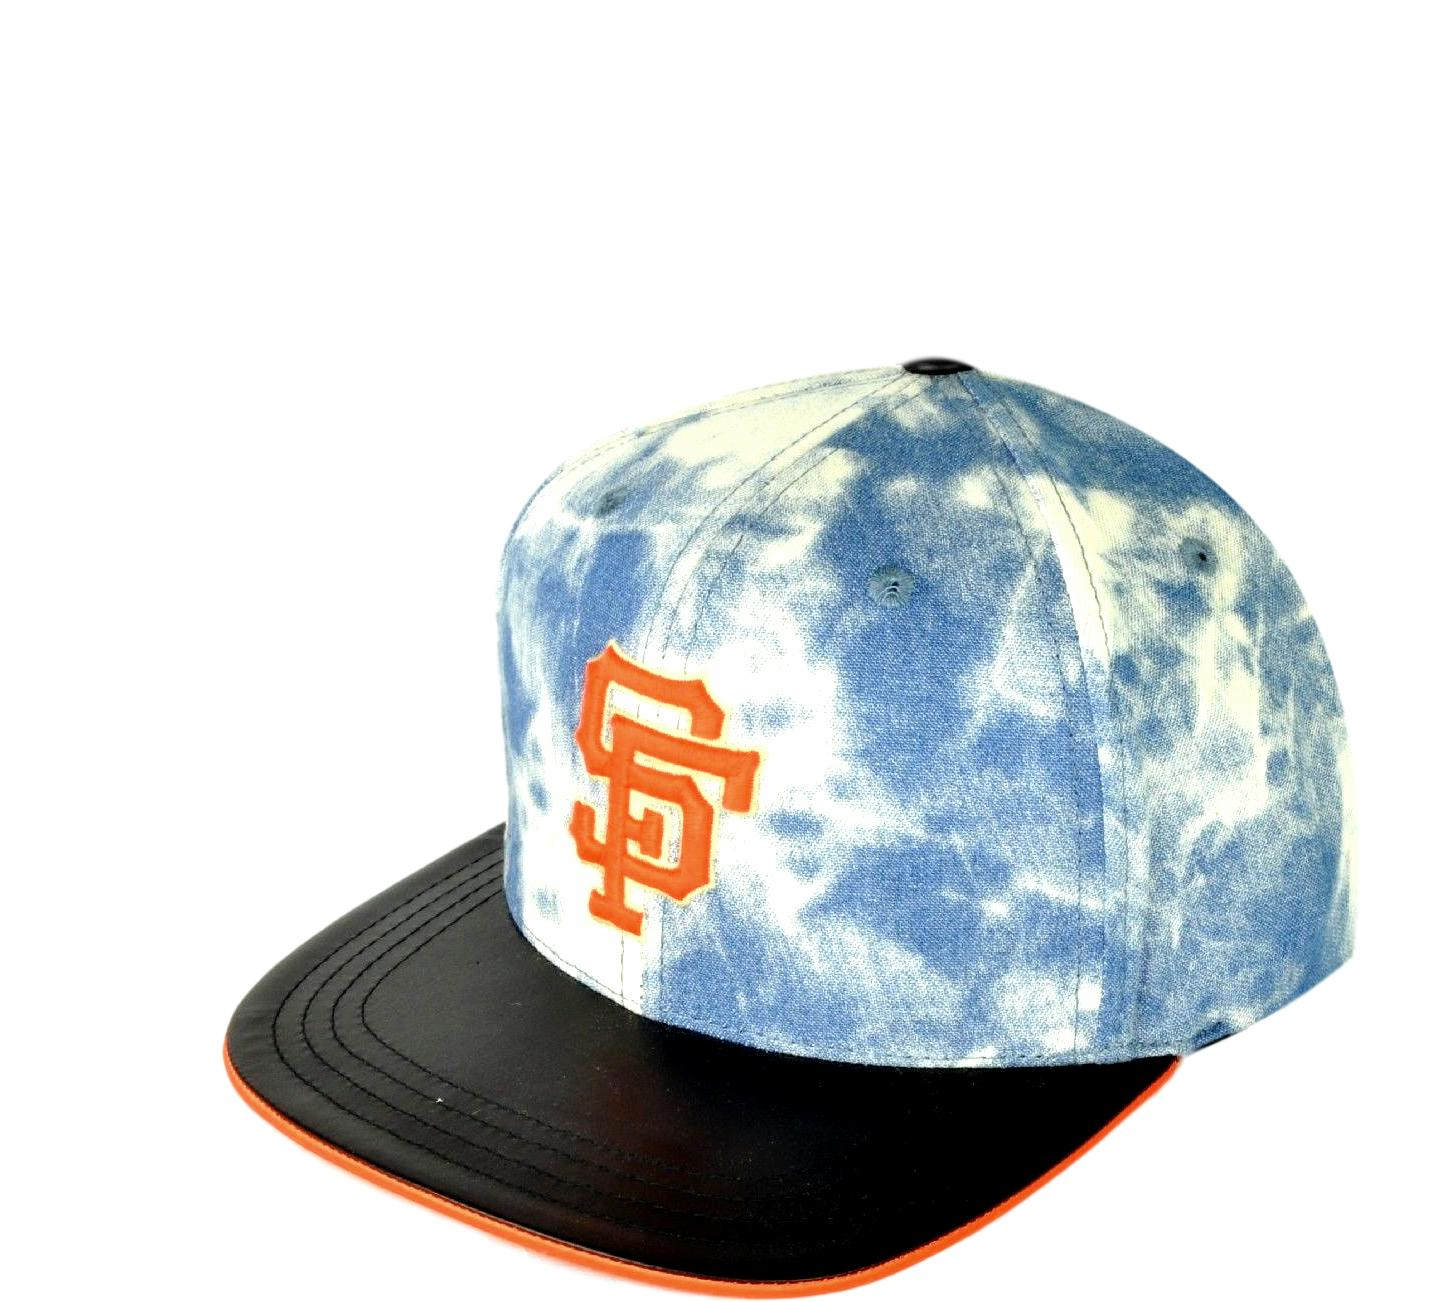 Giants Retro Strapback Hat